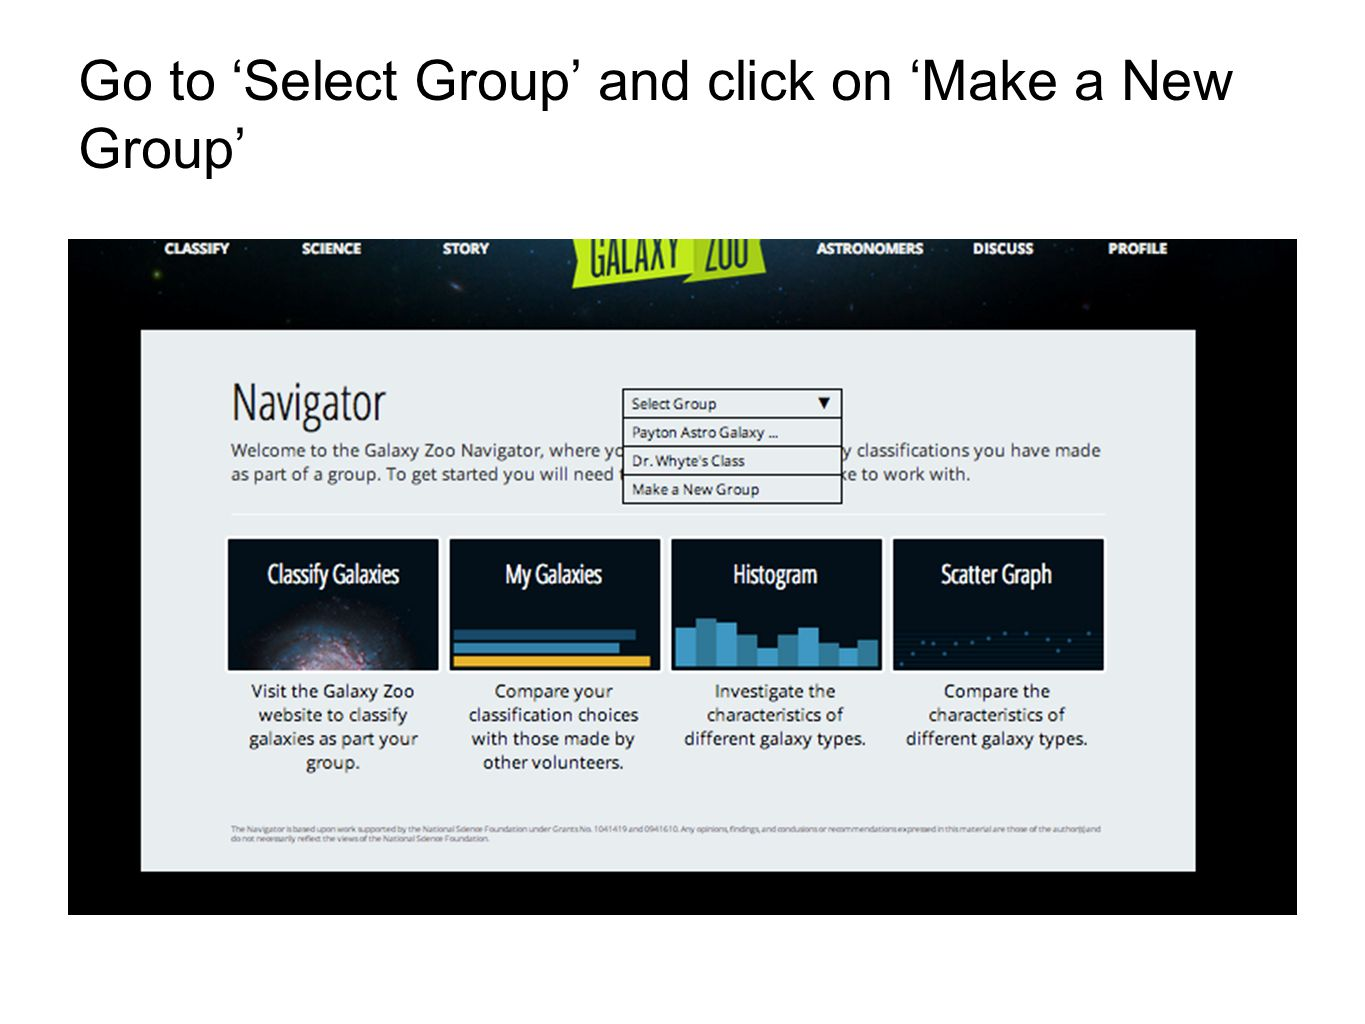 Go to 'Select Group' and click on 'Make a New Group'